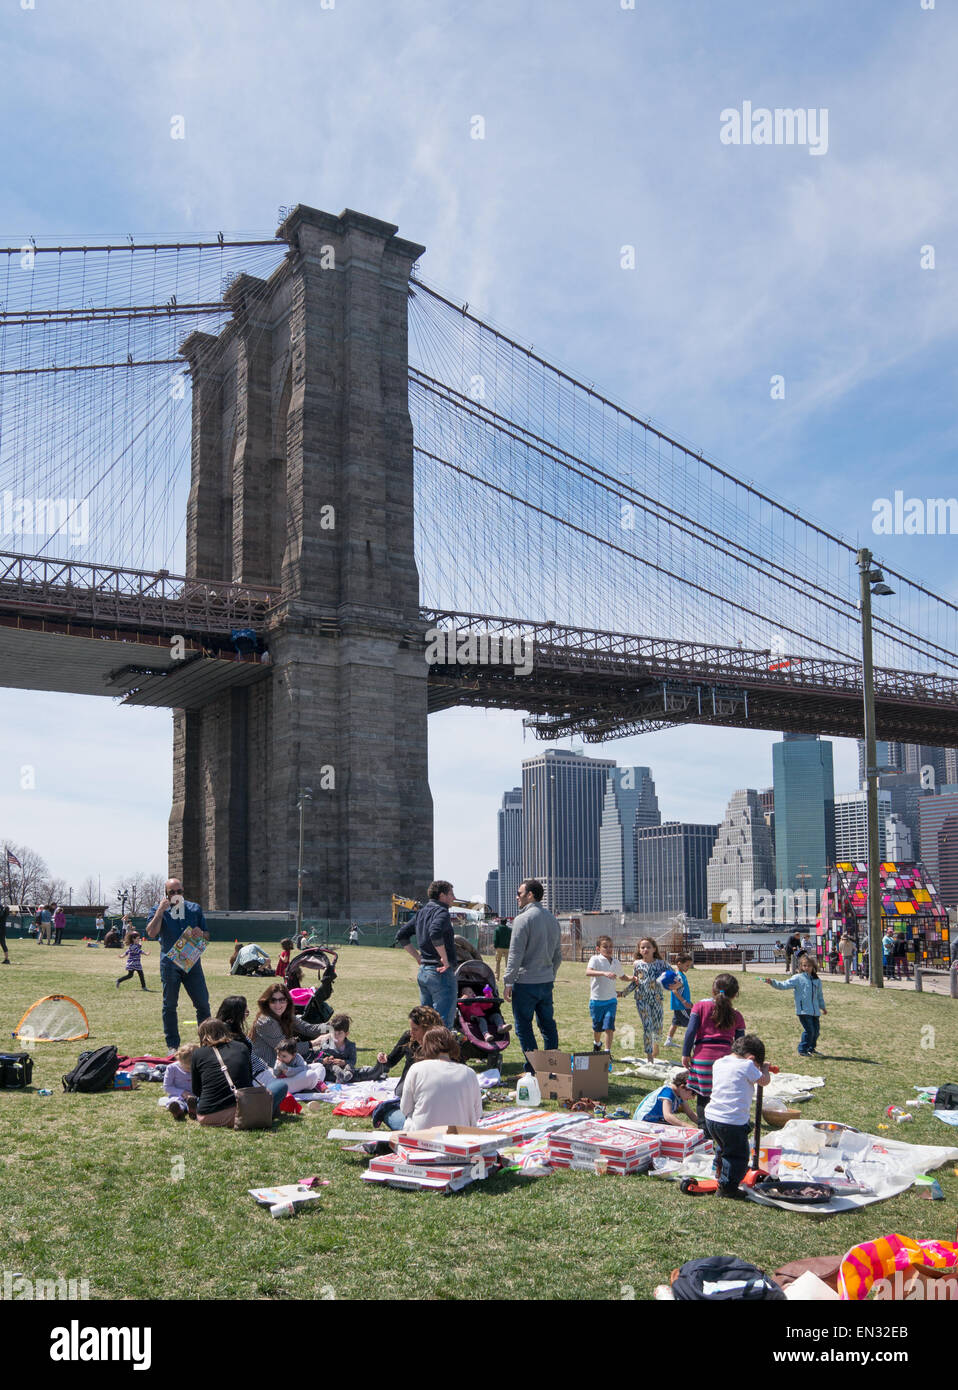 Familienpicknick Brooklyn Bridge Park, New York, USA Stockbild